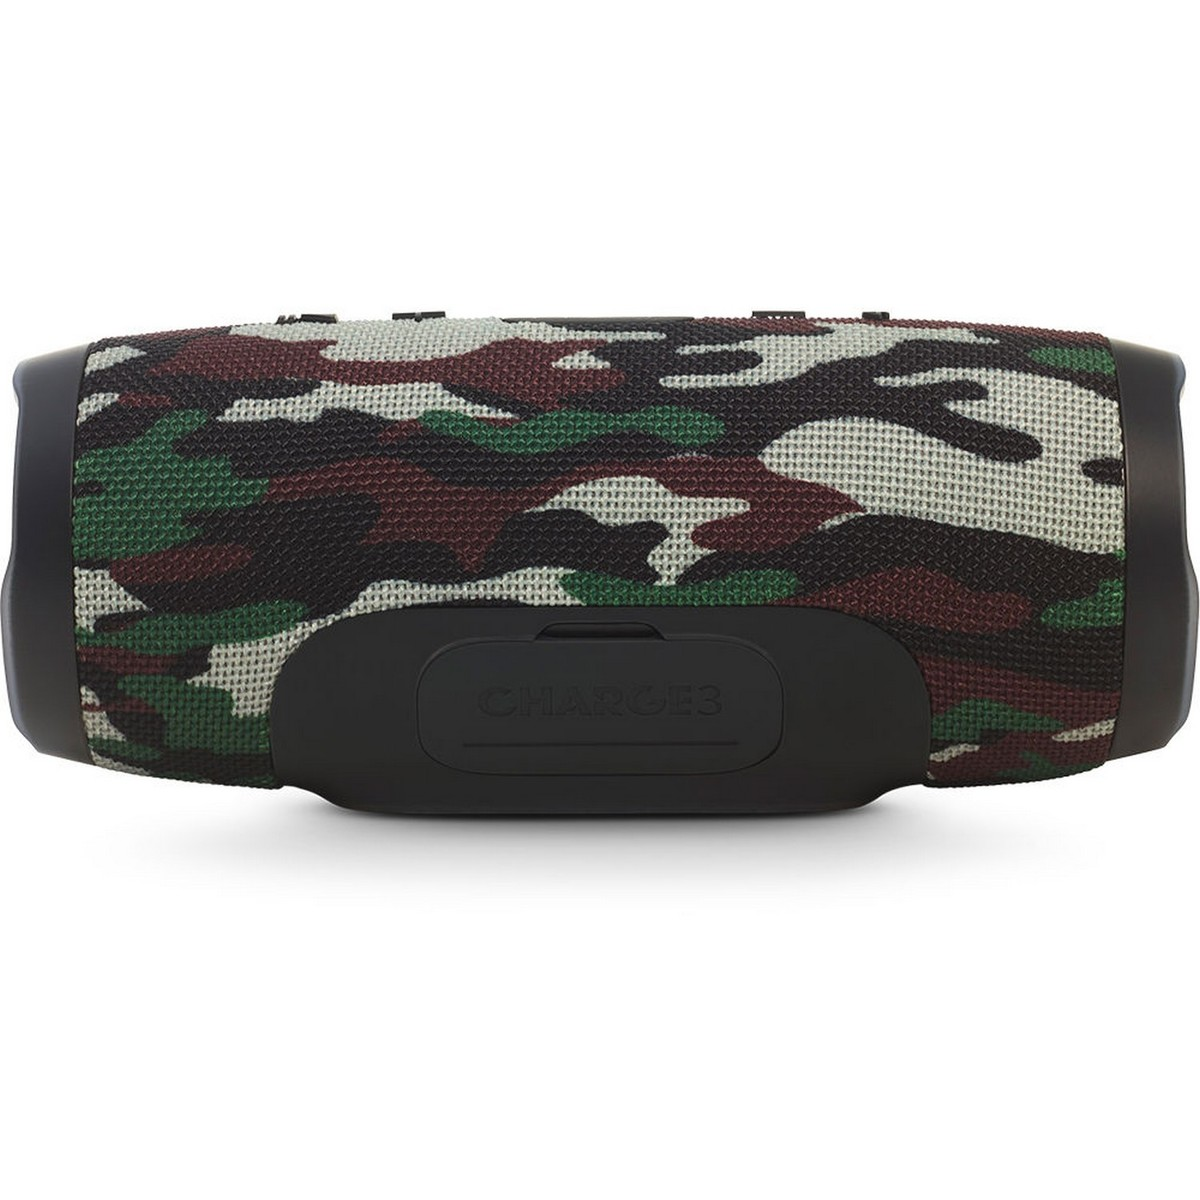 Buy JBL Charge 3 Bluetooth Speaker Camouflage - Wireless